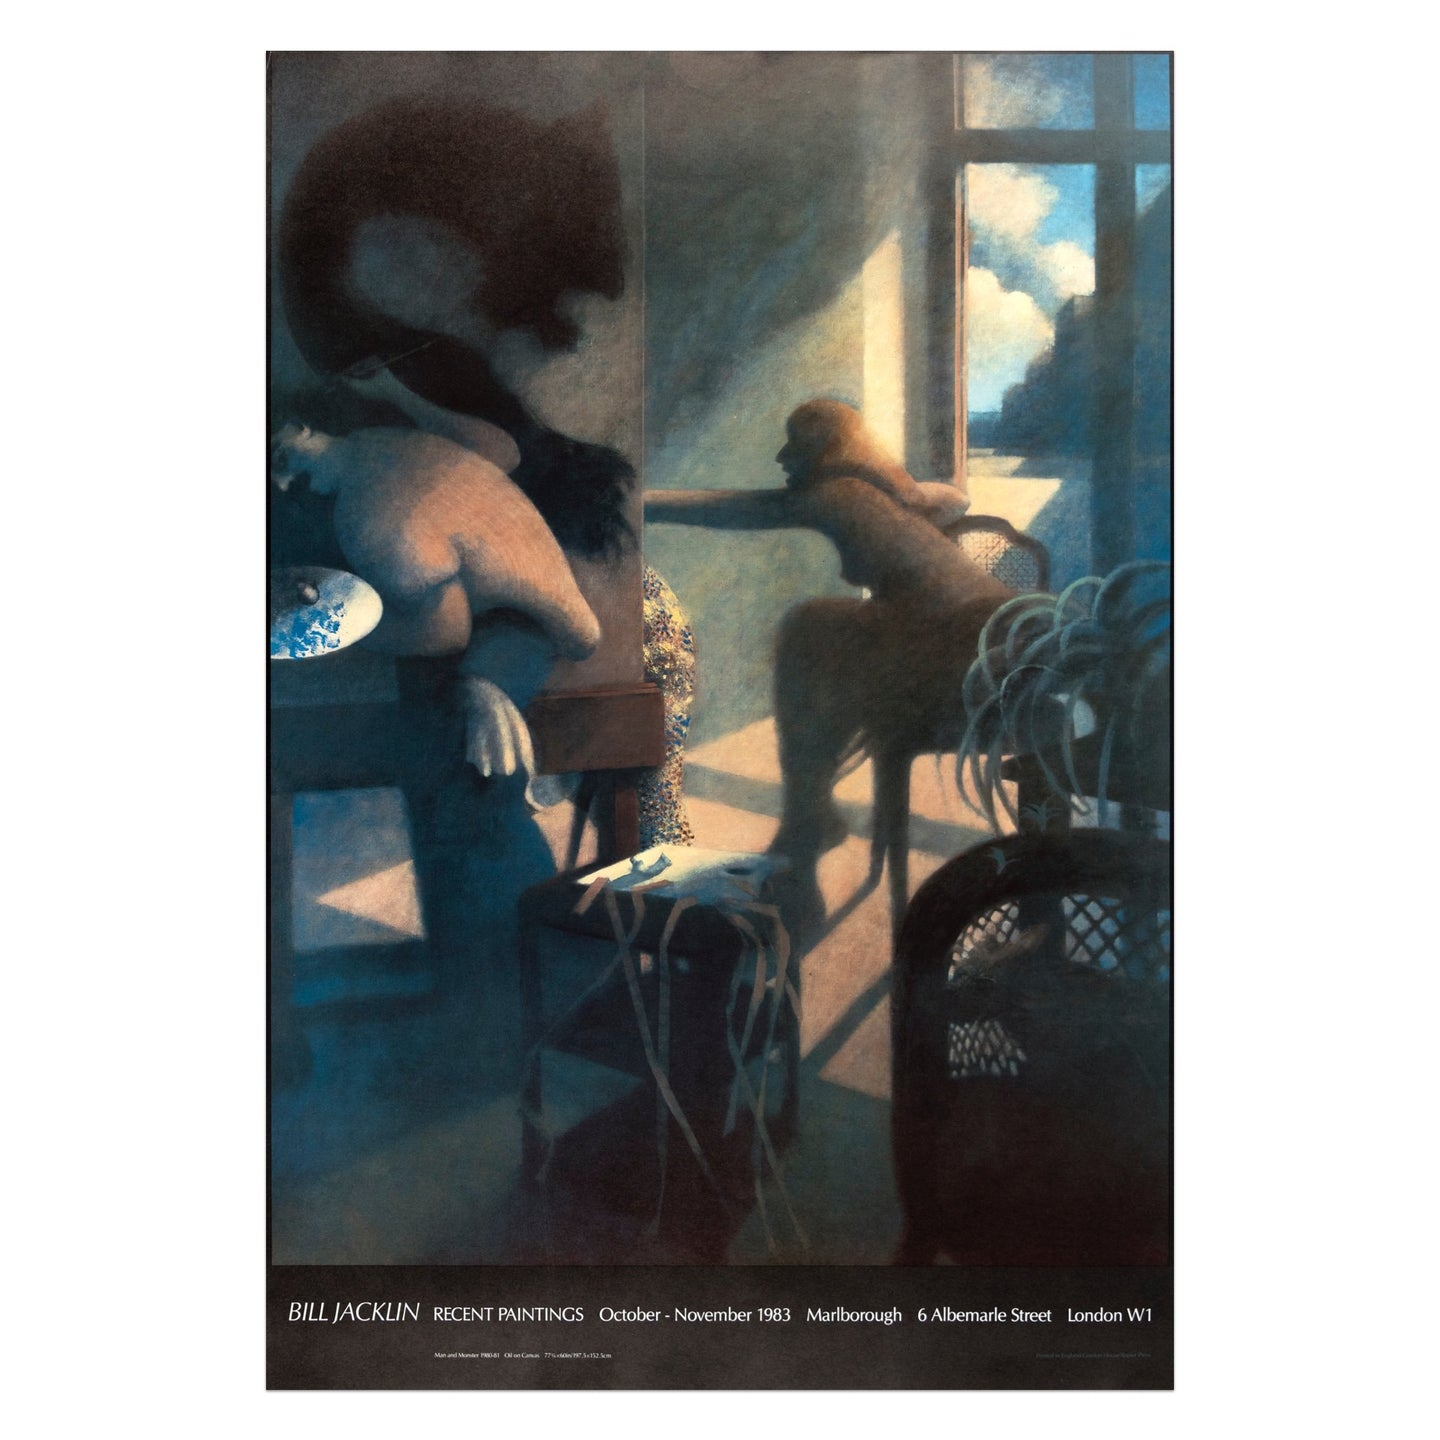 Bill Jacklin recent paintings poster from 1983 featuring a man and a monster along with a woman sitting beside a window